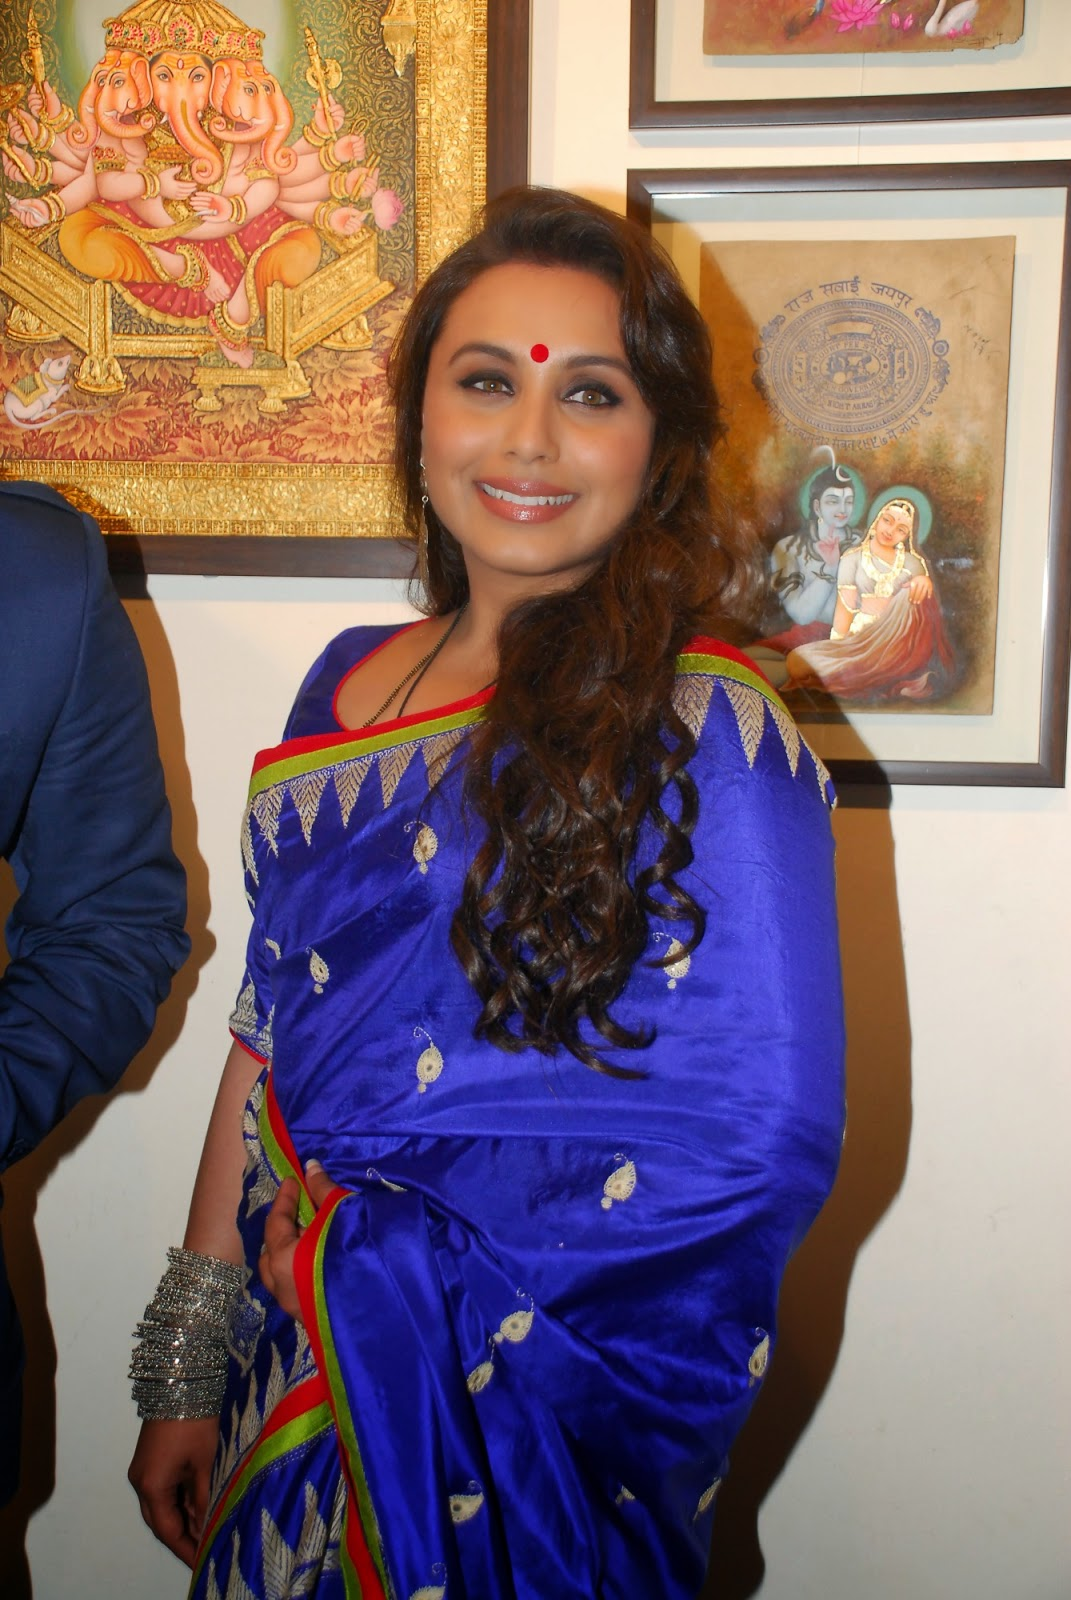 Rani Mukerji Launch Art Show An Art Collector's Paradise Event